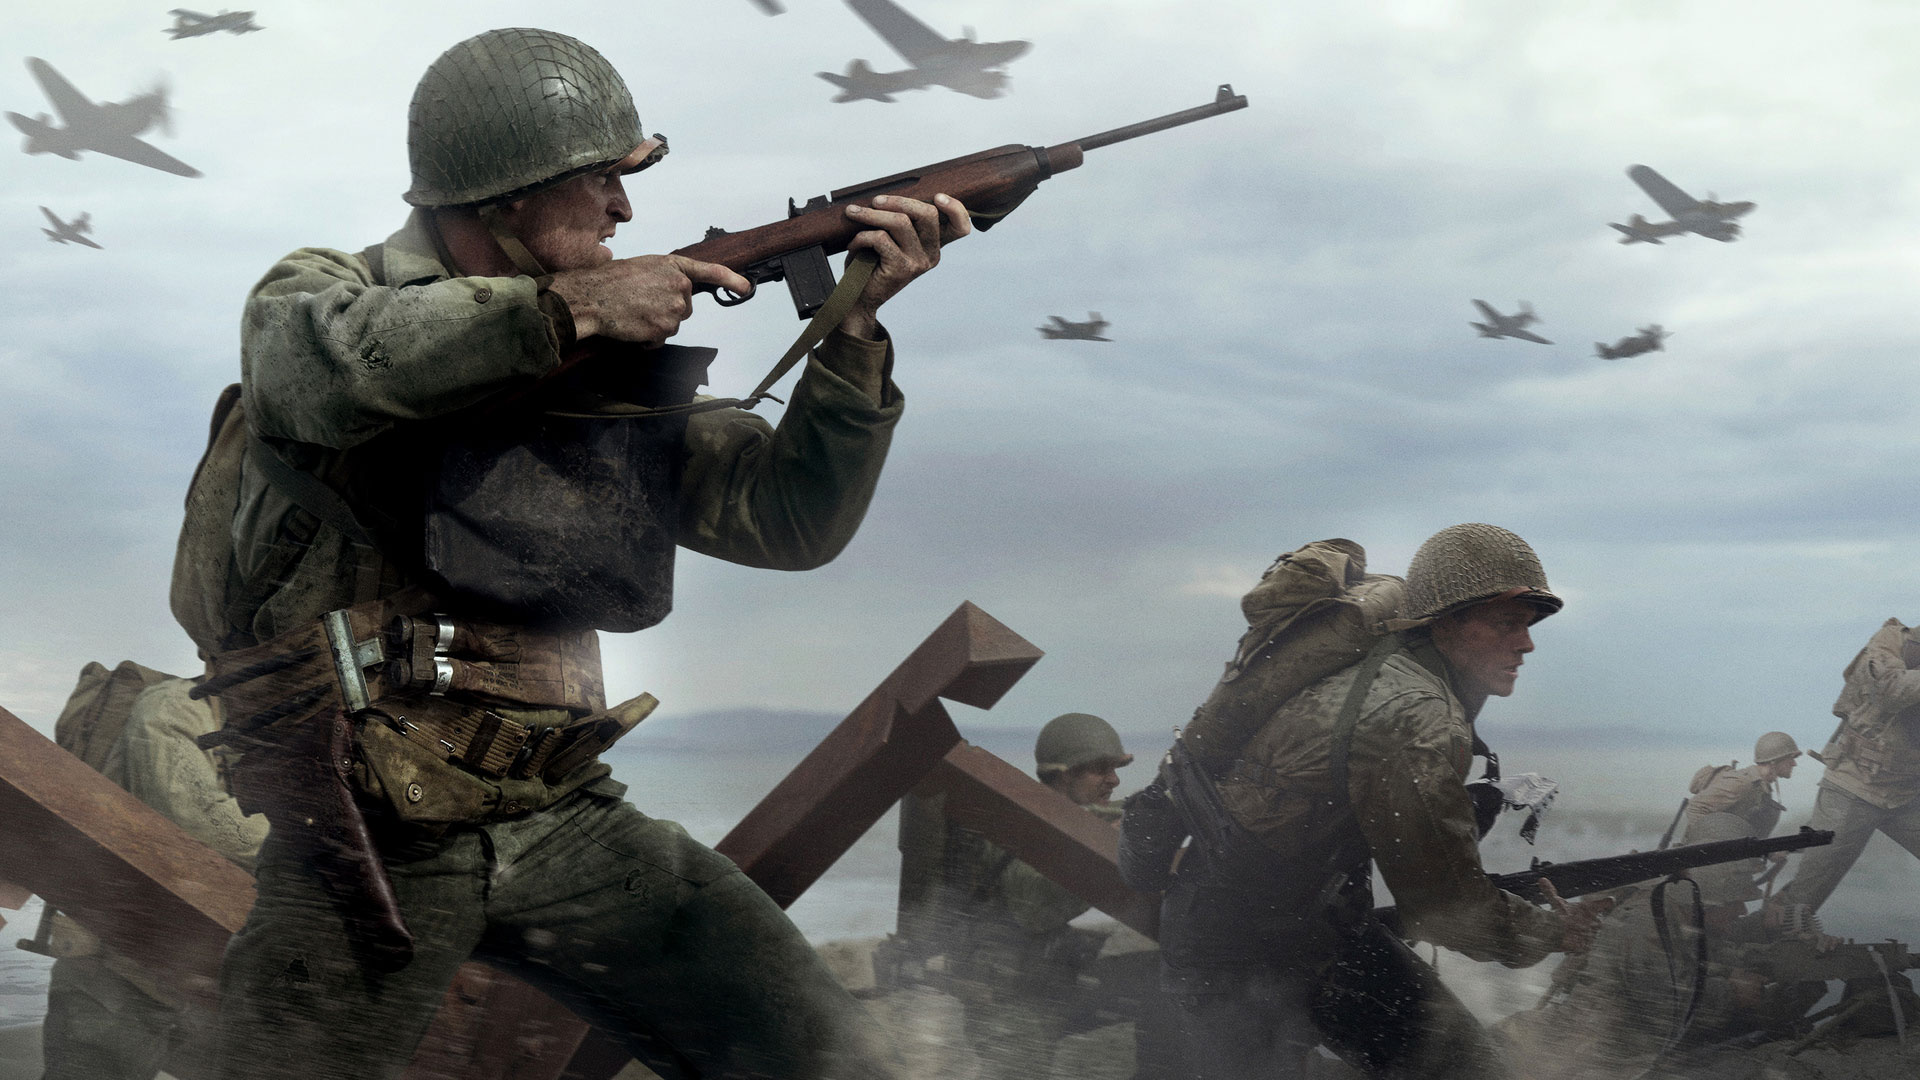 Call Of Duty Wwii Update 1 10 Deployed Full Pc Ps4 Xo Patch Notes Inside